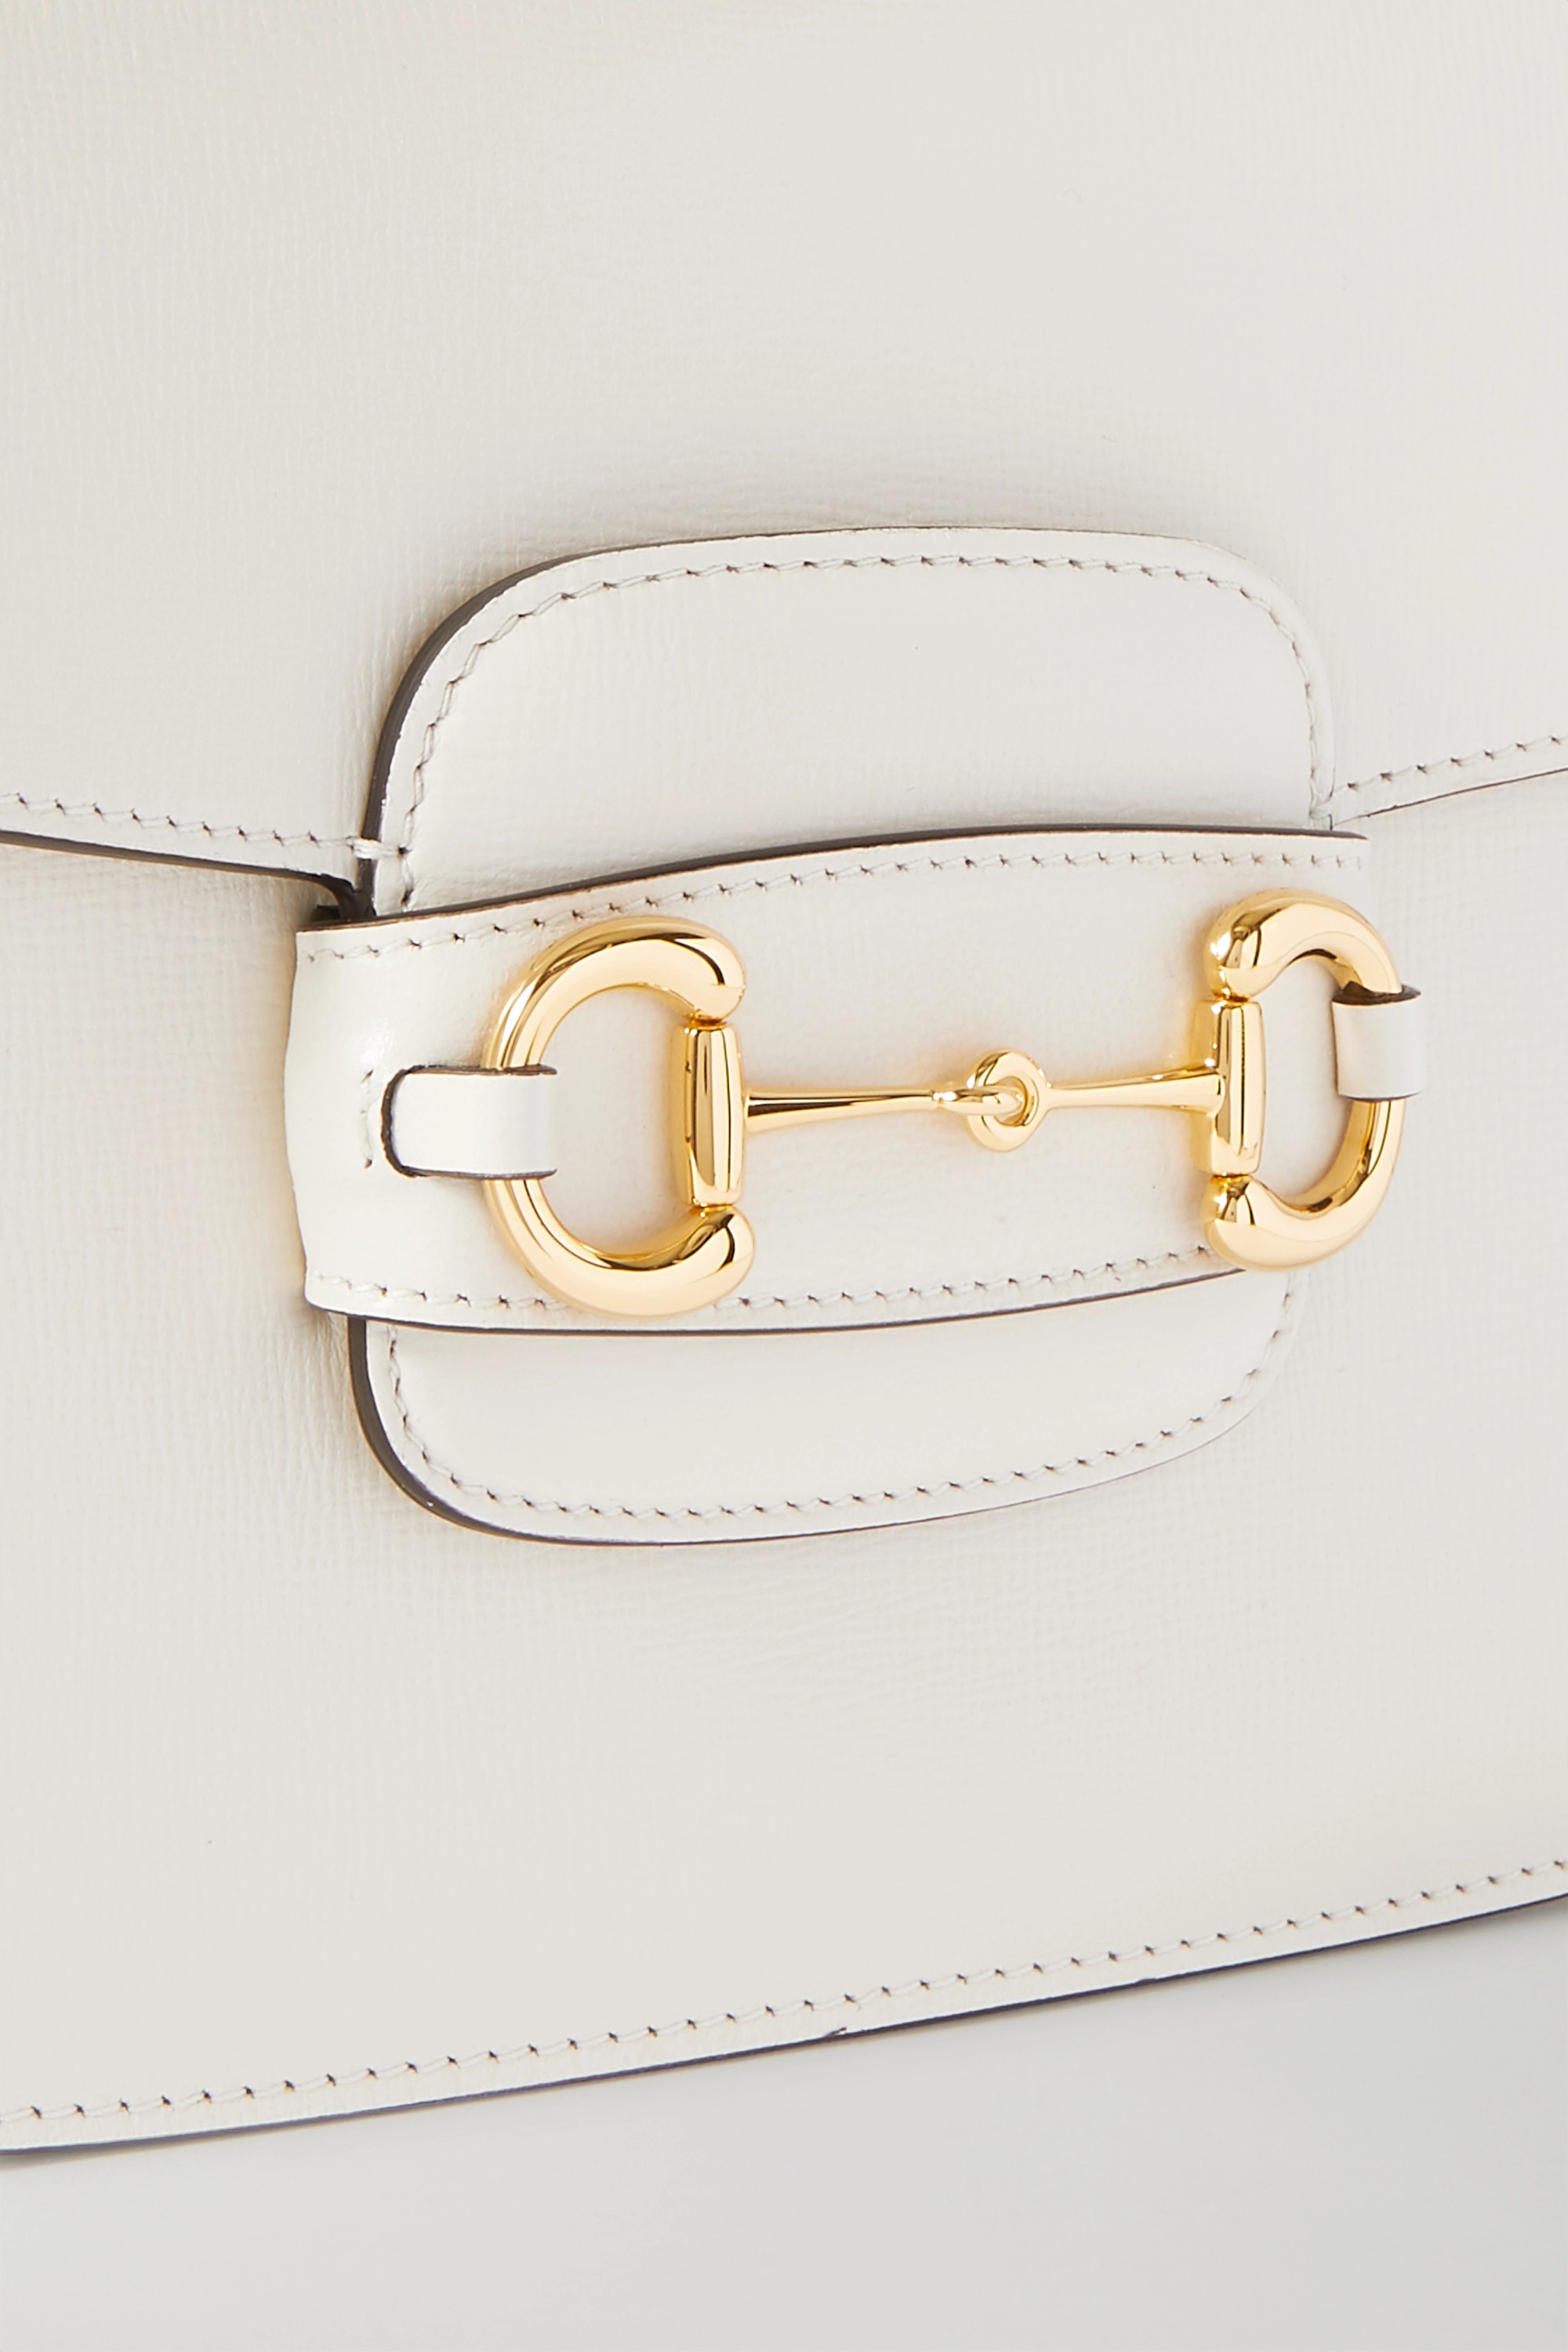 GUCCI 1955 horsebit-detailed textured-leather shoulder bag